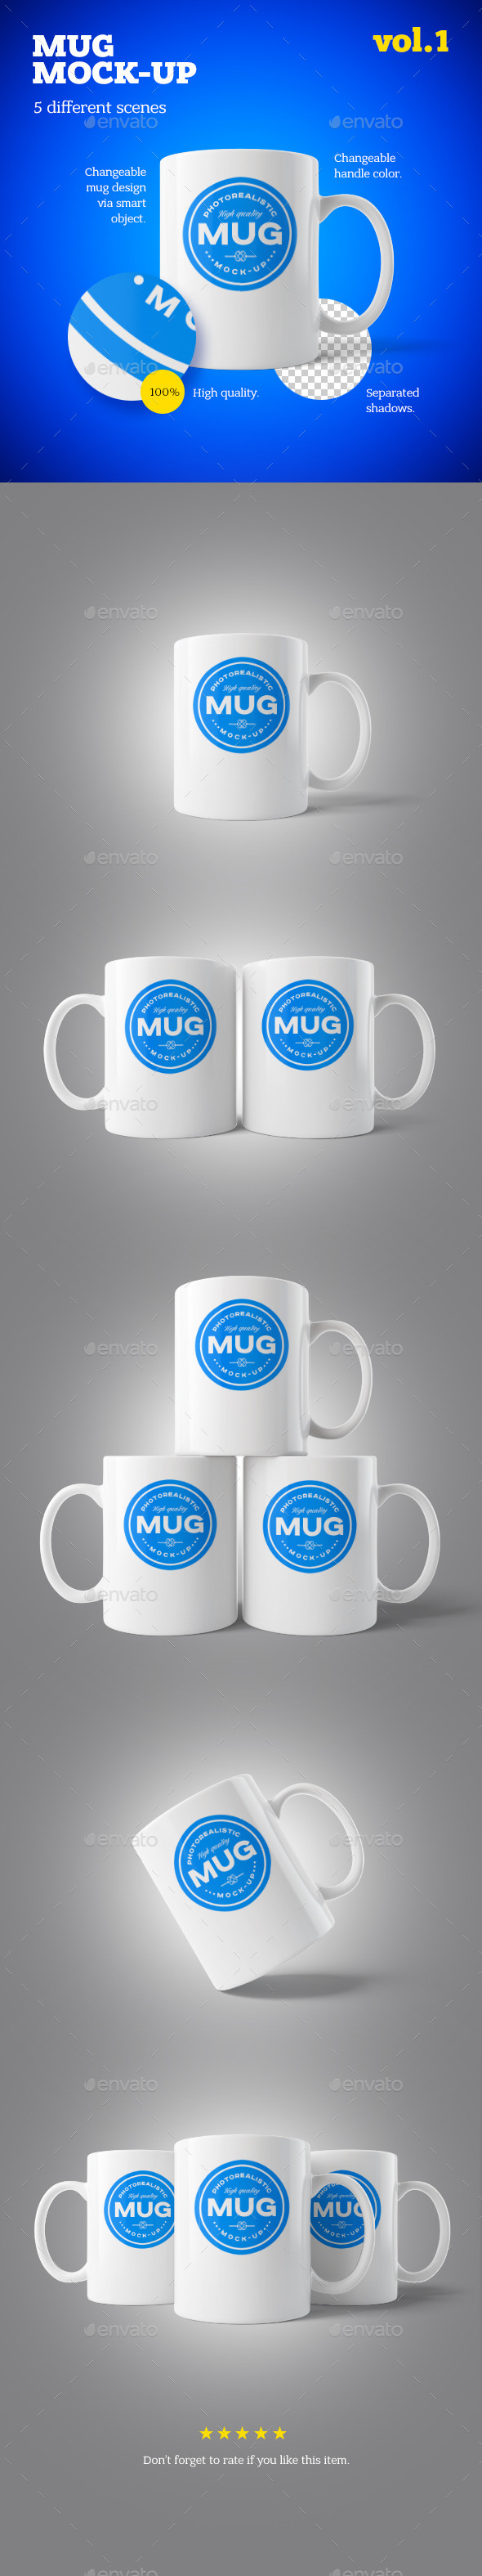 GraphicRiver Mug Mock-up Vol.1 10230167